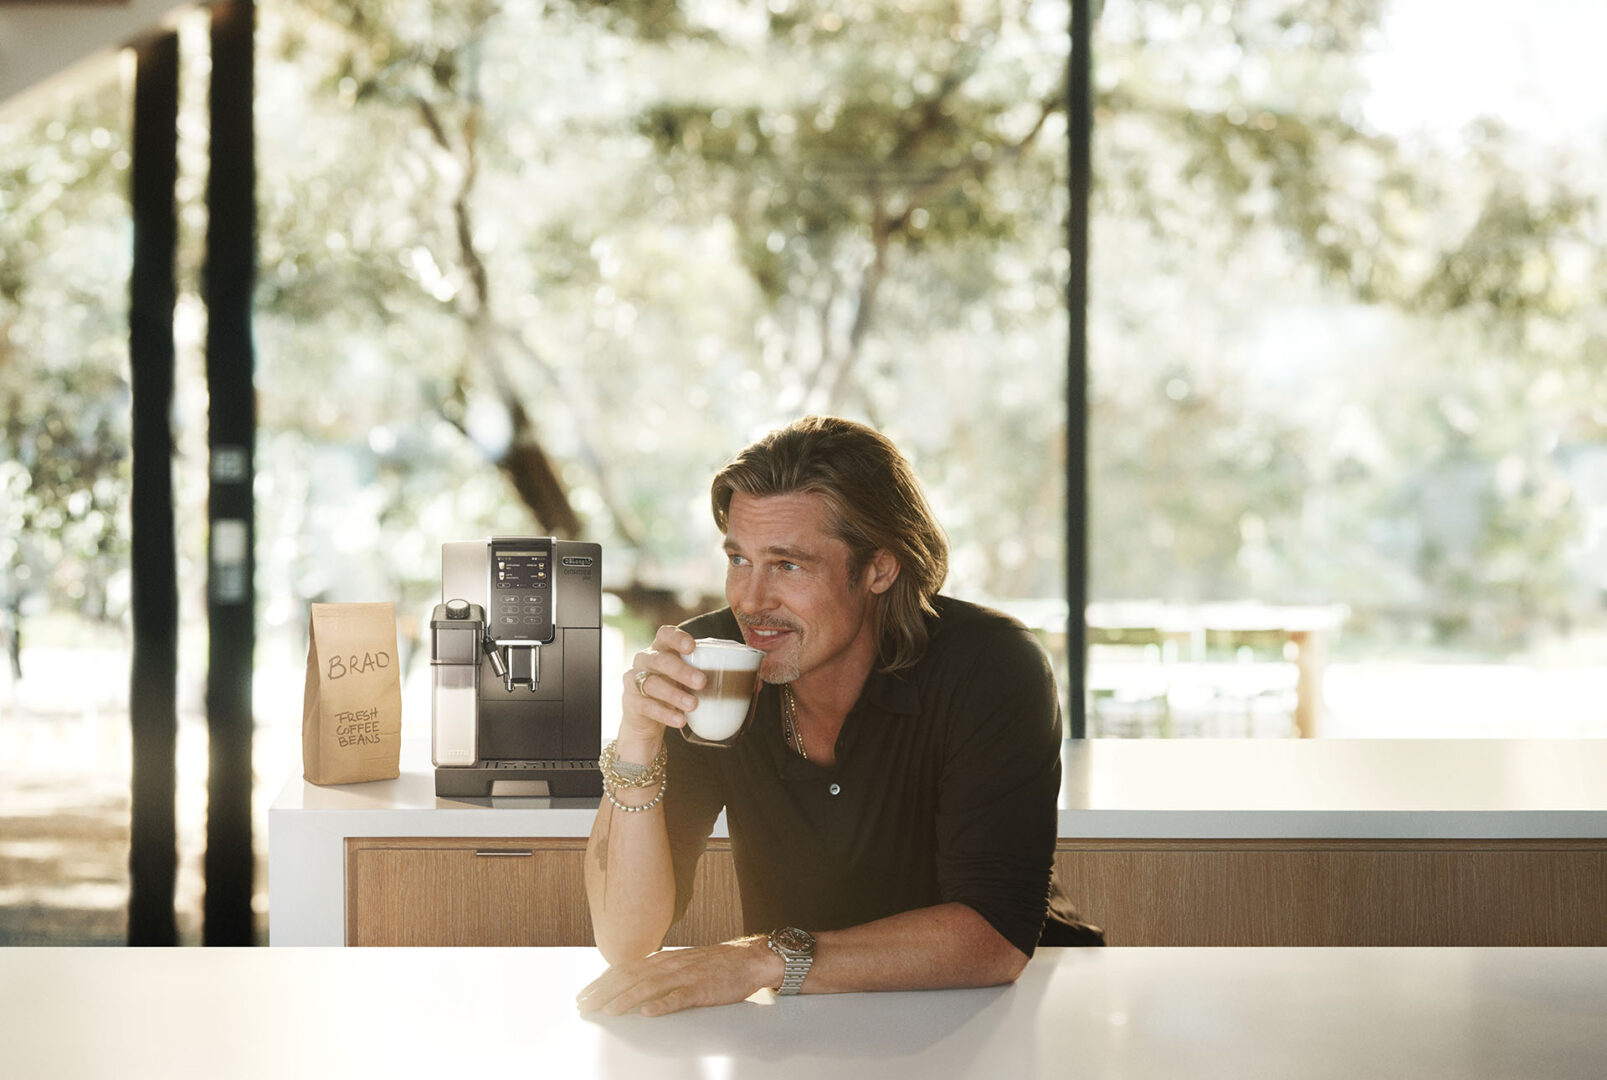 Brad Pitt holding a cup of coffee from De'Longhi